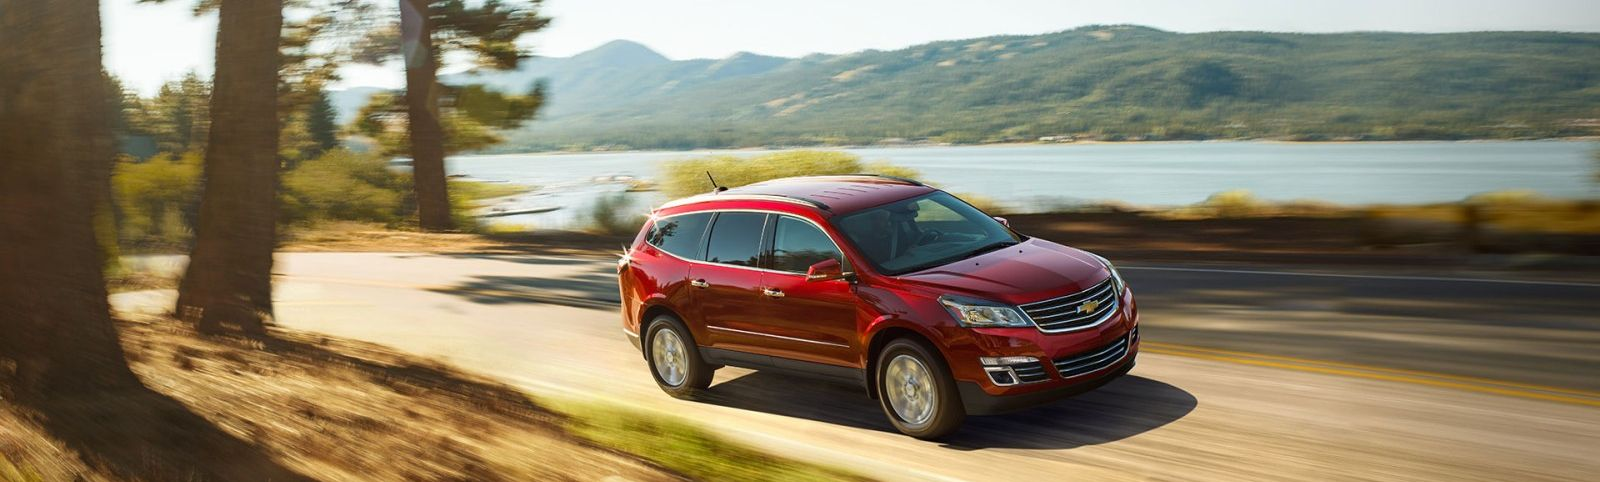 2017 Chevy Traverse for Sale near Denver, CO